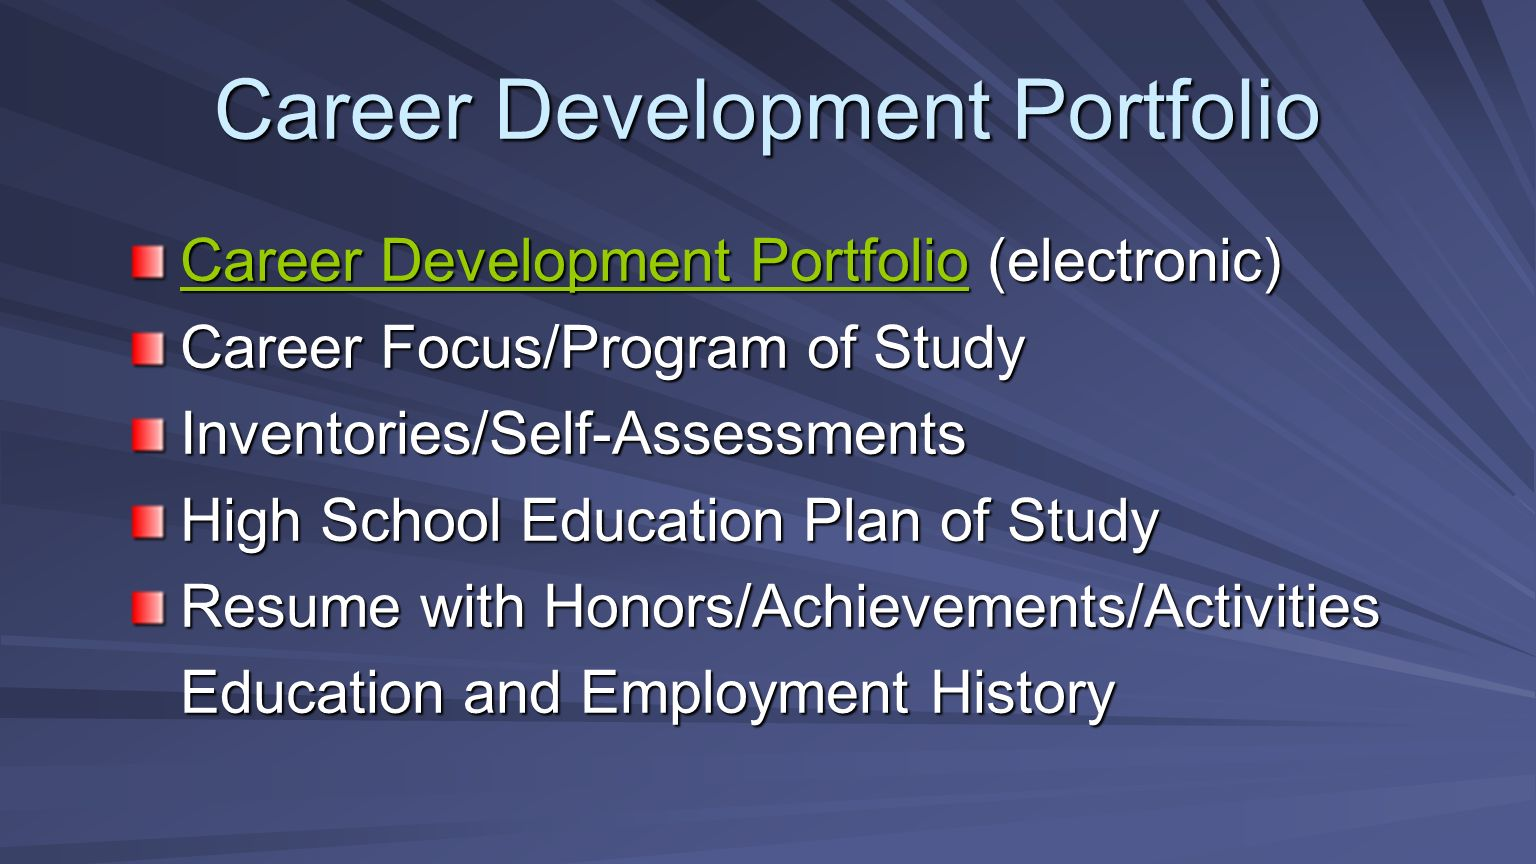 Career Development Portfolio Career Development PortfolioCareer Development Portfolio (electronic) Career Development Portfolio Career Focus/Program of Study Inventories/Self-Assessments High School Education Plan of Study Resume with Honors/Achievements/Activities Education and Employment History